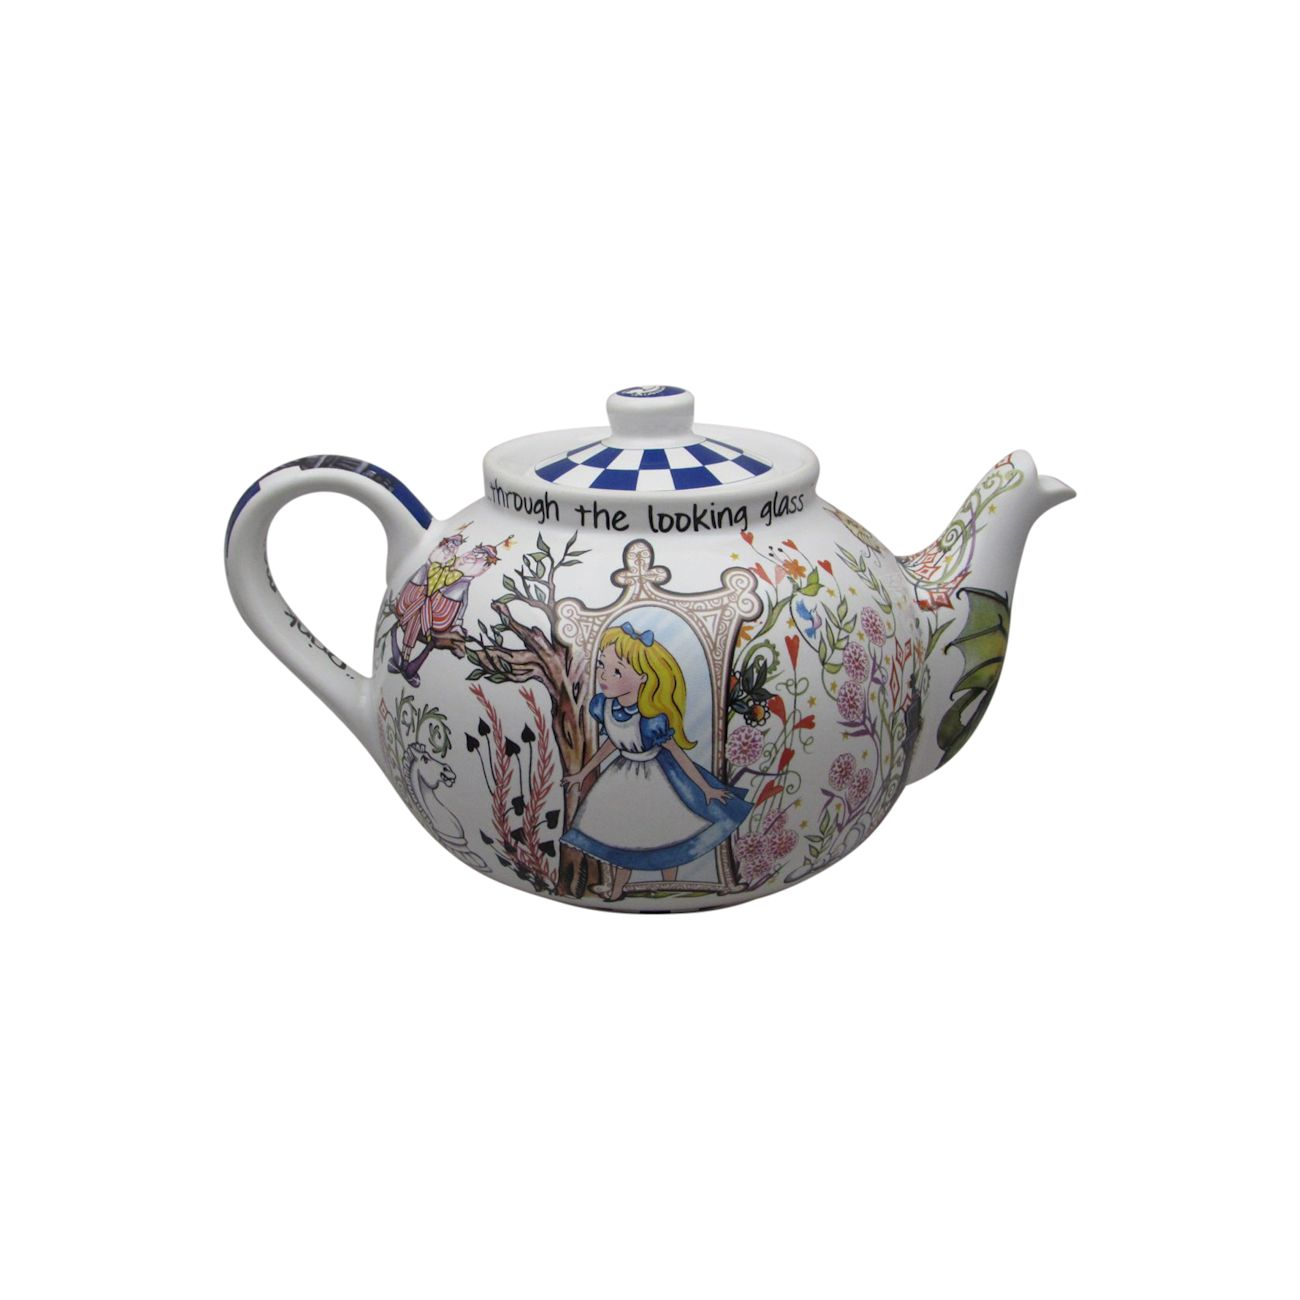 Looking For Teapots Alice Through The Looking Glass Betty Teapot Paul Cardew